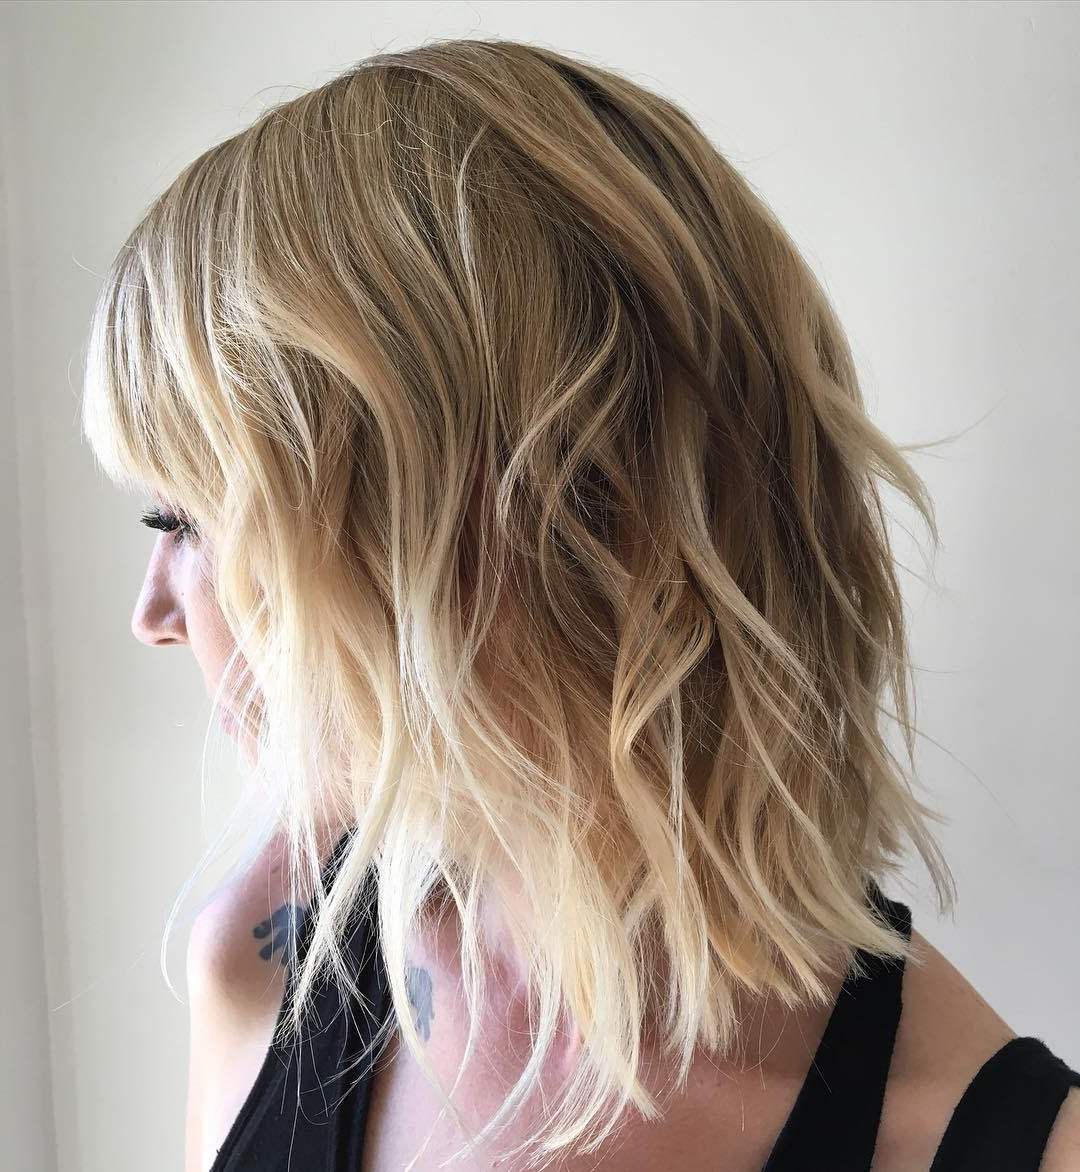 25 Alluring Bob Hairstyles For Fine Hair – Latest Bob Hair Throughout Shaggy Bob Hairstyles With Blonde Balayage (View 6 of 20)